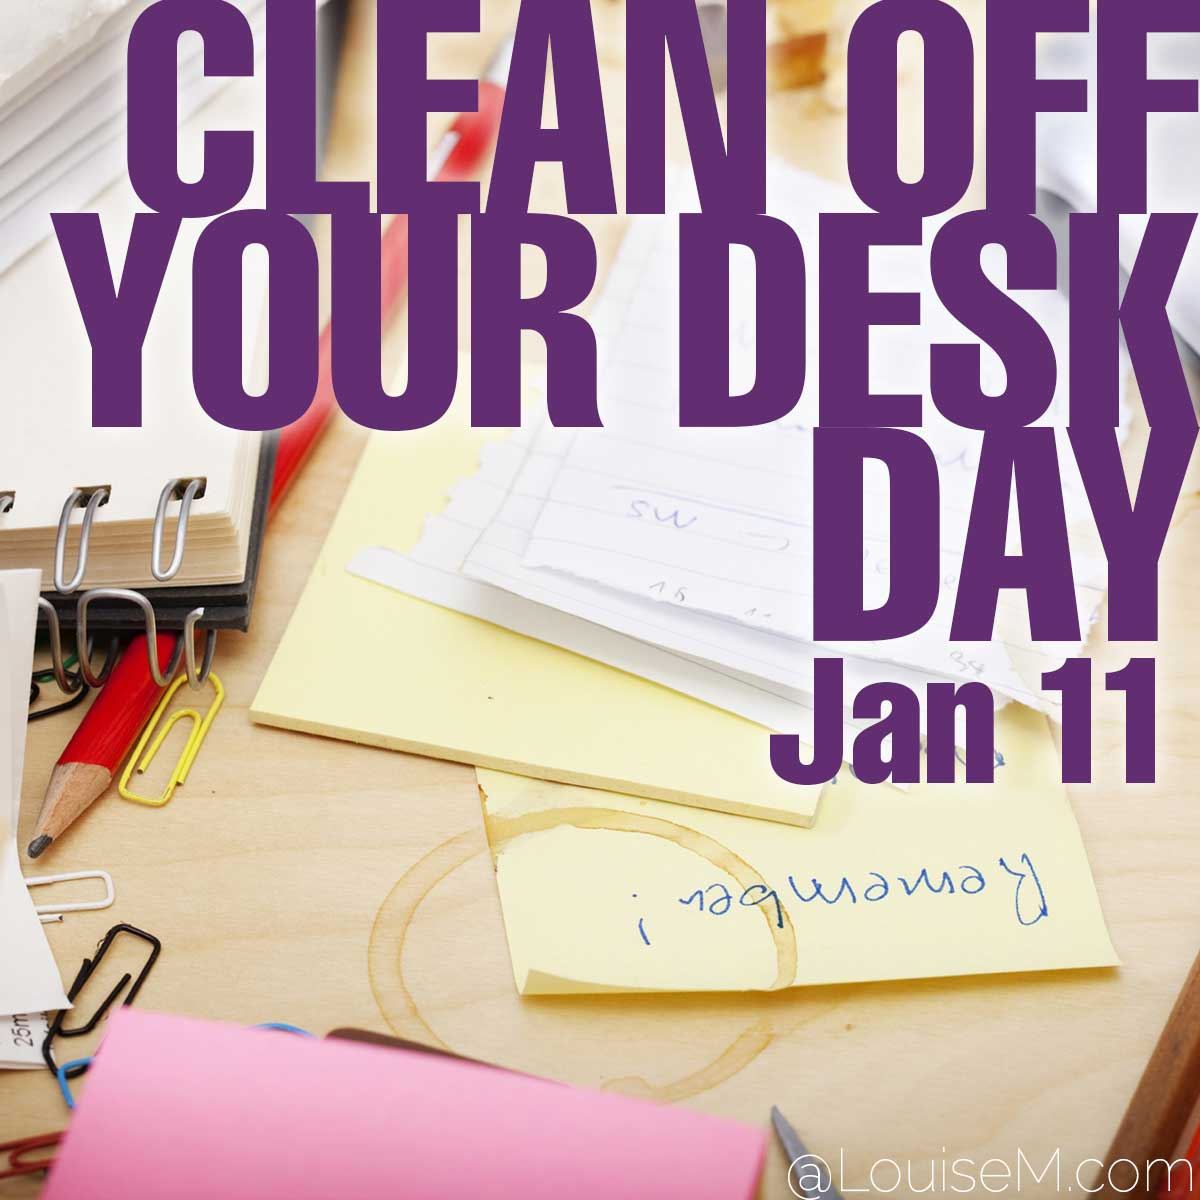 Clean Off Your Desk Day text on photo of messy desk.